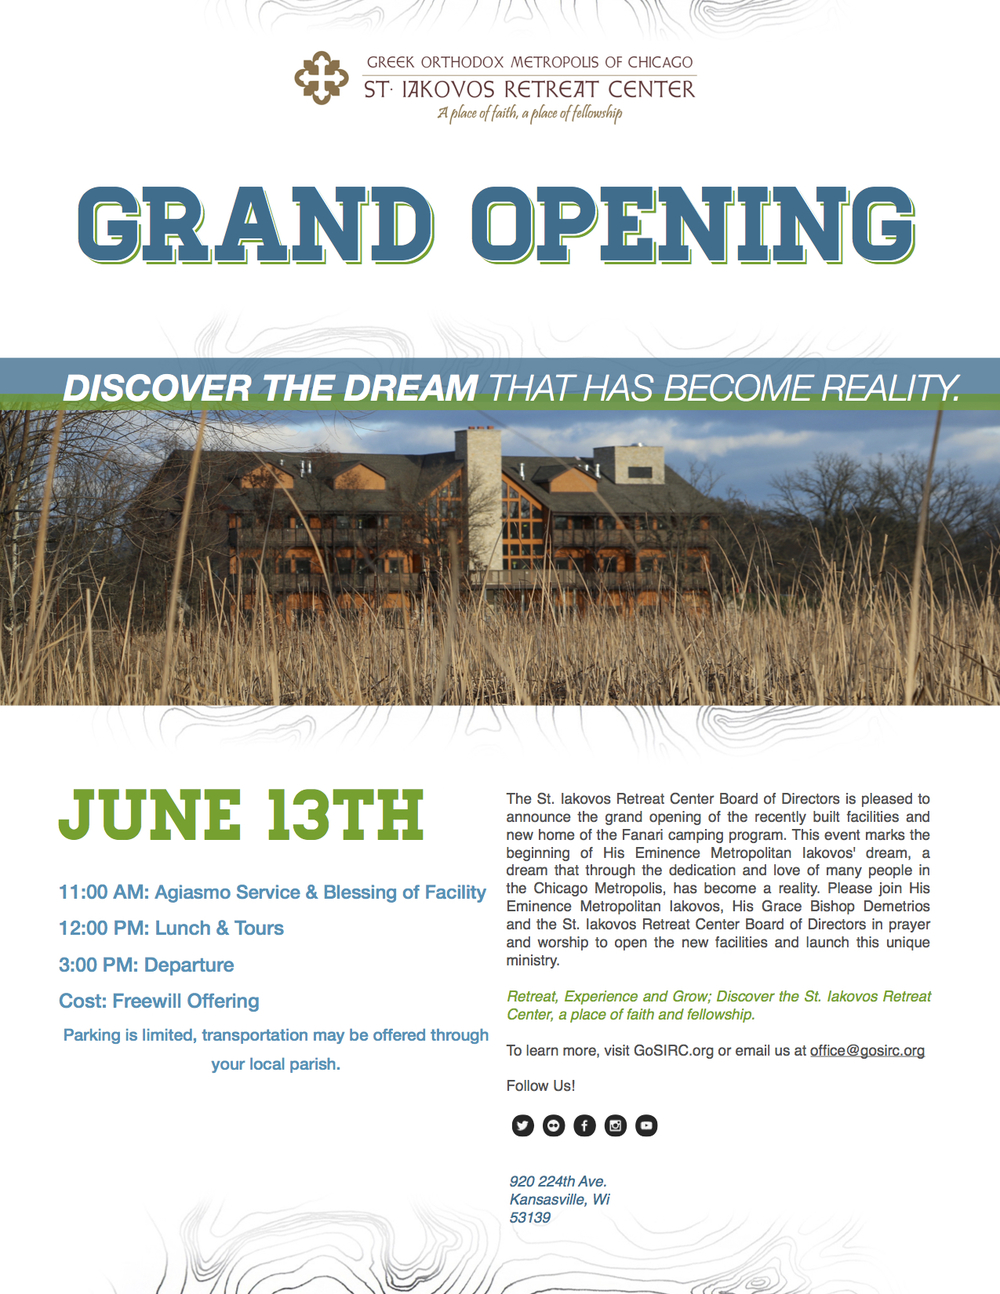 2015 SIRC Grand Opening New facilities Invitation